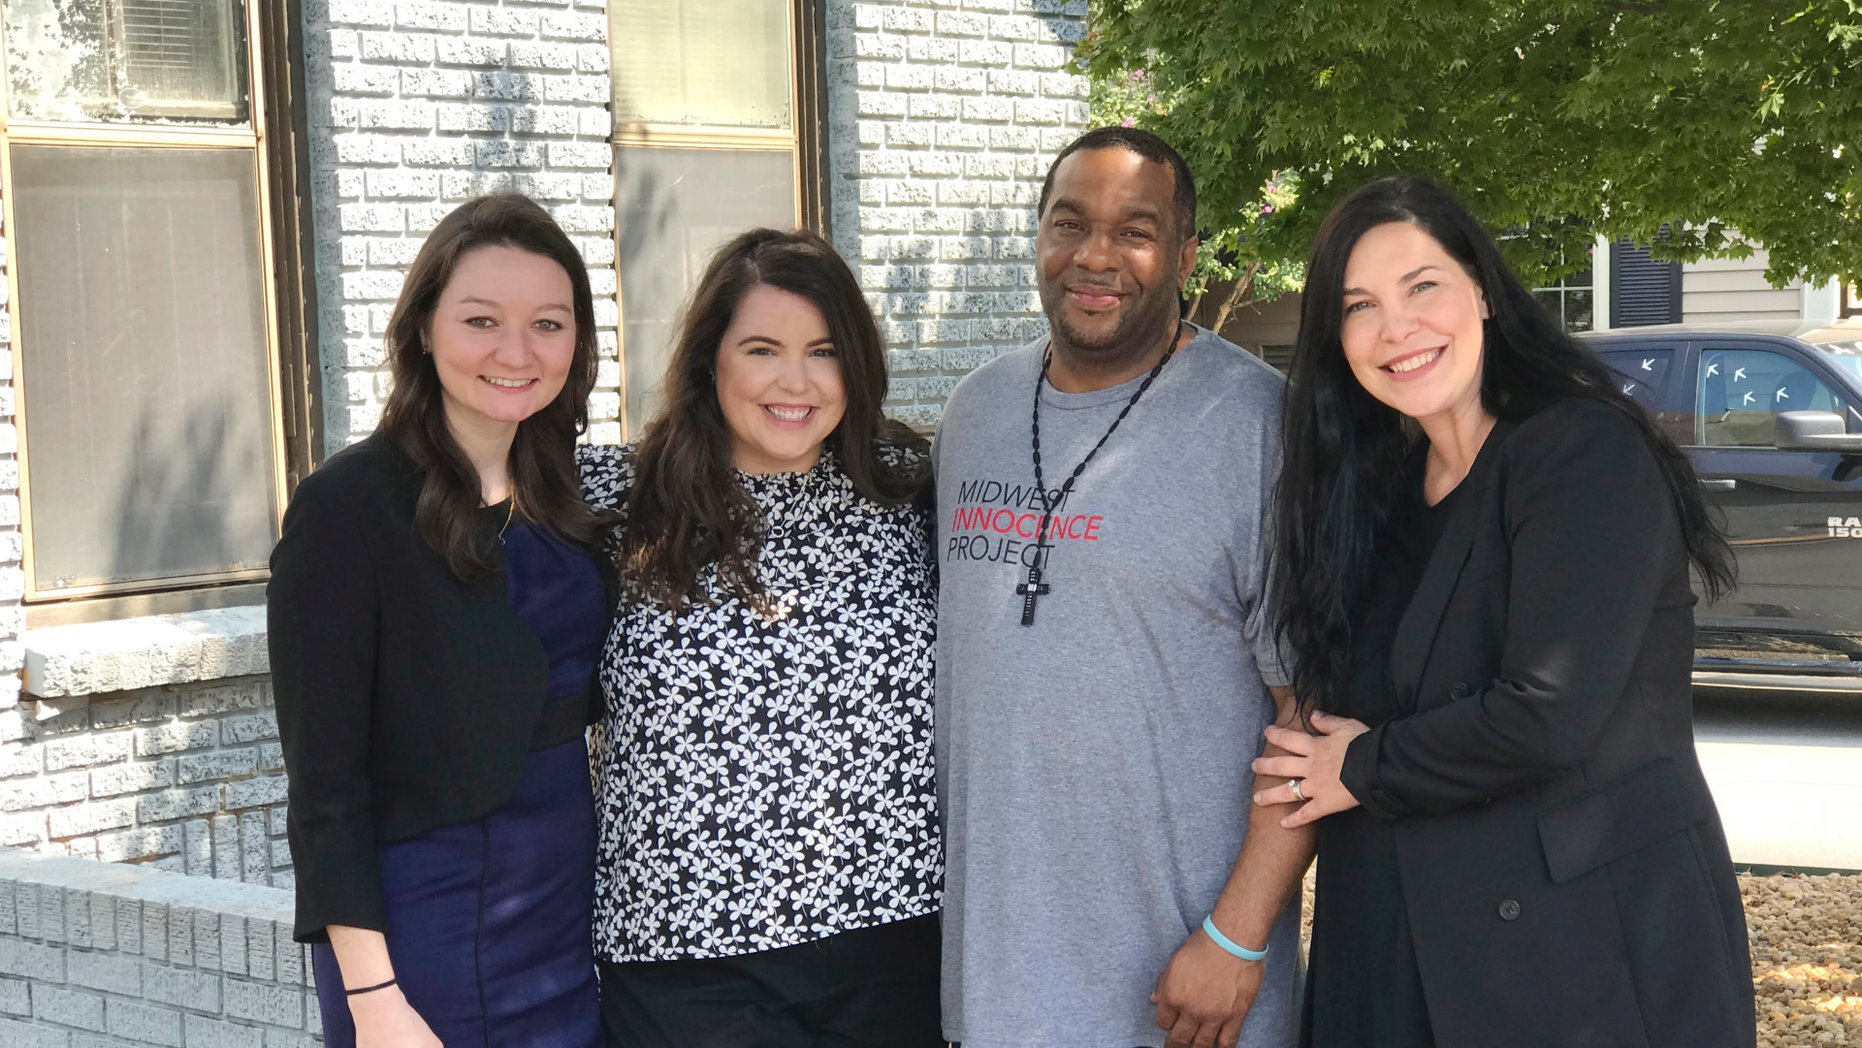 In this photo provided by the law firm Lassiter and Cassinelli, John Brown, second from right, poses with Midwest Innocence Project investigator Blair Johnson, MIP attorney Rachel Wester, and attorney Erin Cassinelli after Brown was released from prison on Wednesday, Sept. 19, 2018, in Little Rock, Ark. In August, a judge overturned Brown's 1992 conviction for the murder and robbery of an elderly woman. The state is appealing the judge's decision and Brown could still be retried. (Jene Louviere/Lassiter and Cassinelli via AP)